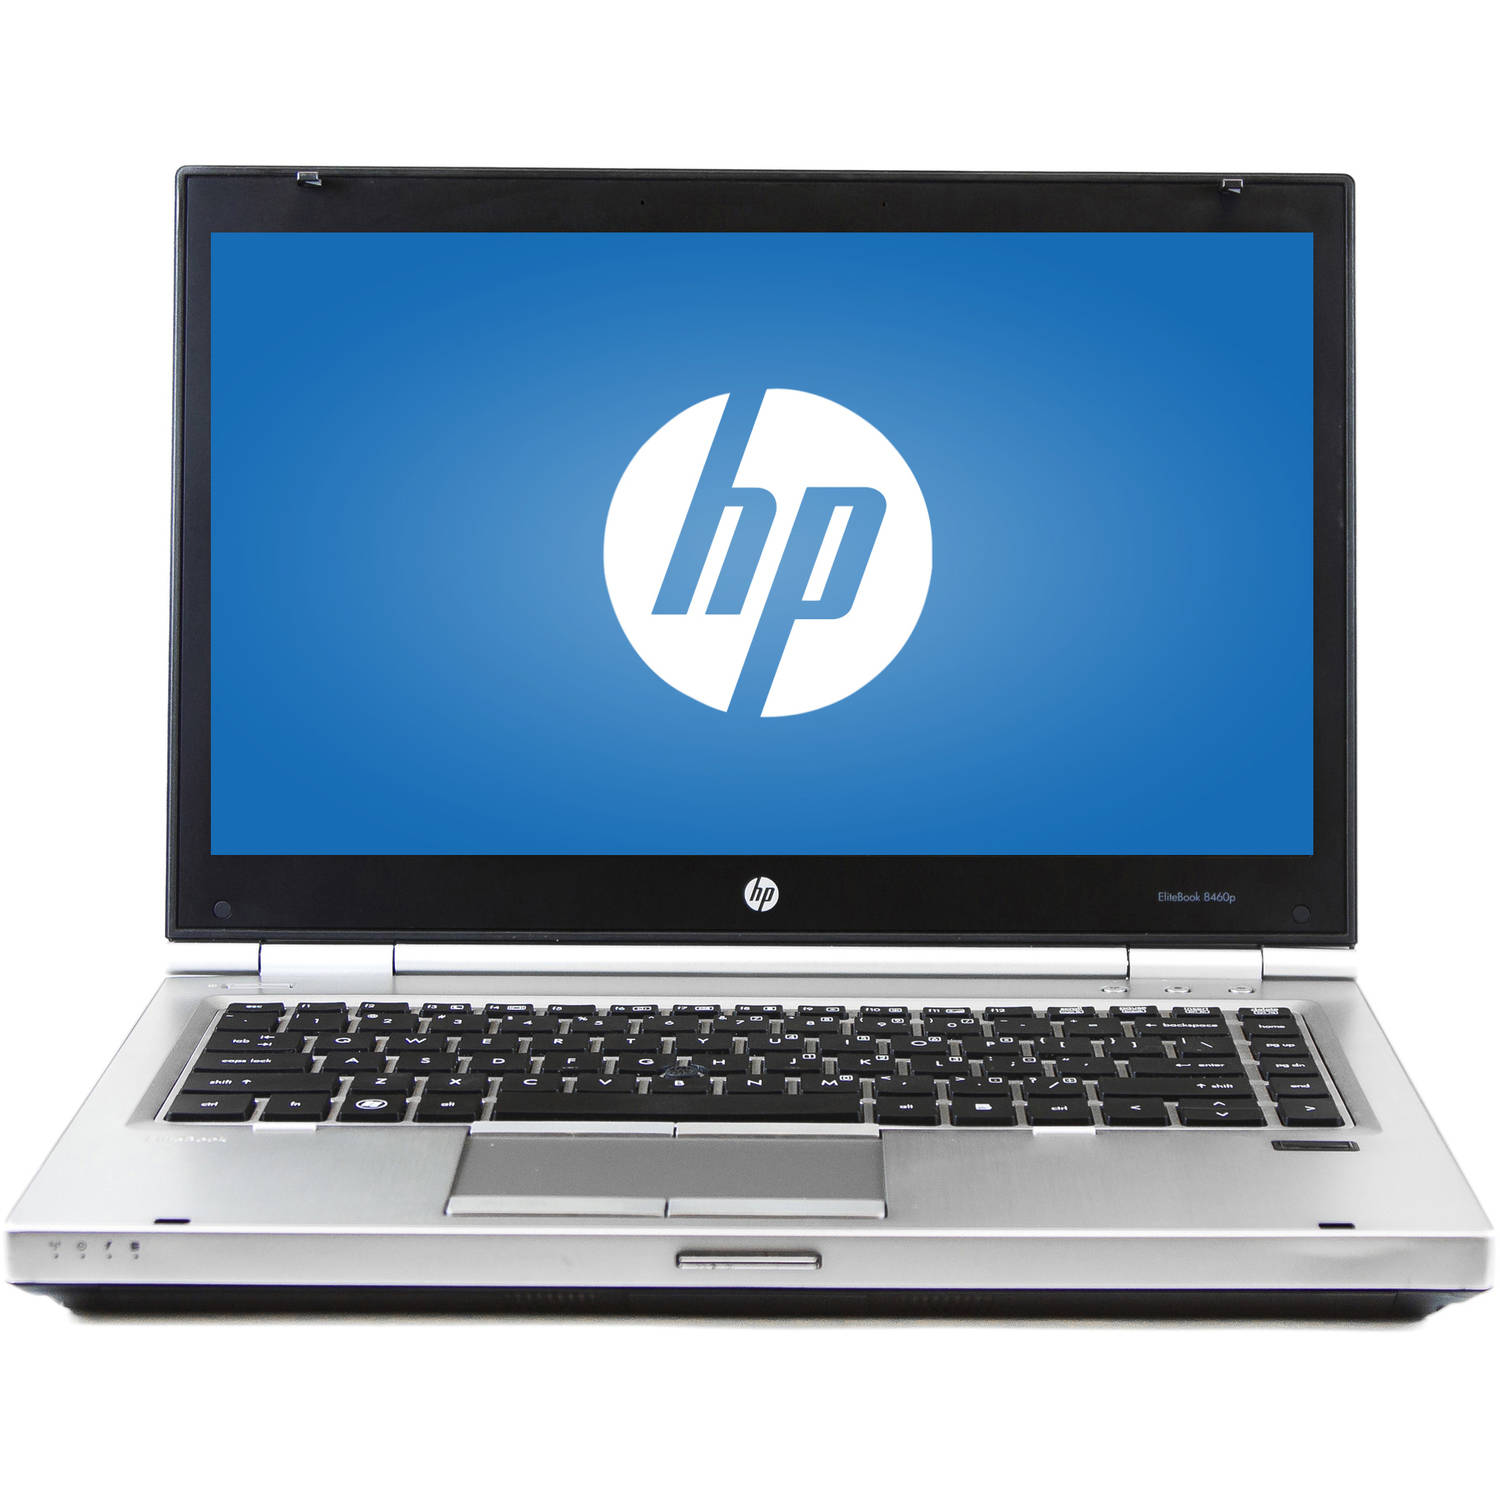 Refurbished HP 14 8460P Laptop PC with Intel Core i5 - 2520M Processor, 4GB Memory, 128GB Solid State Drive and Windows 10 Pro